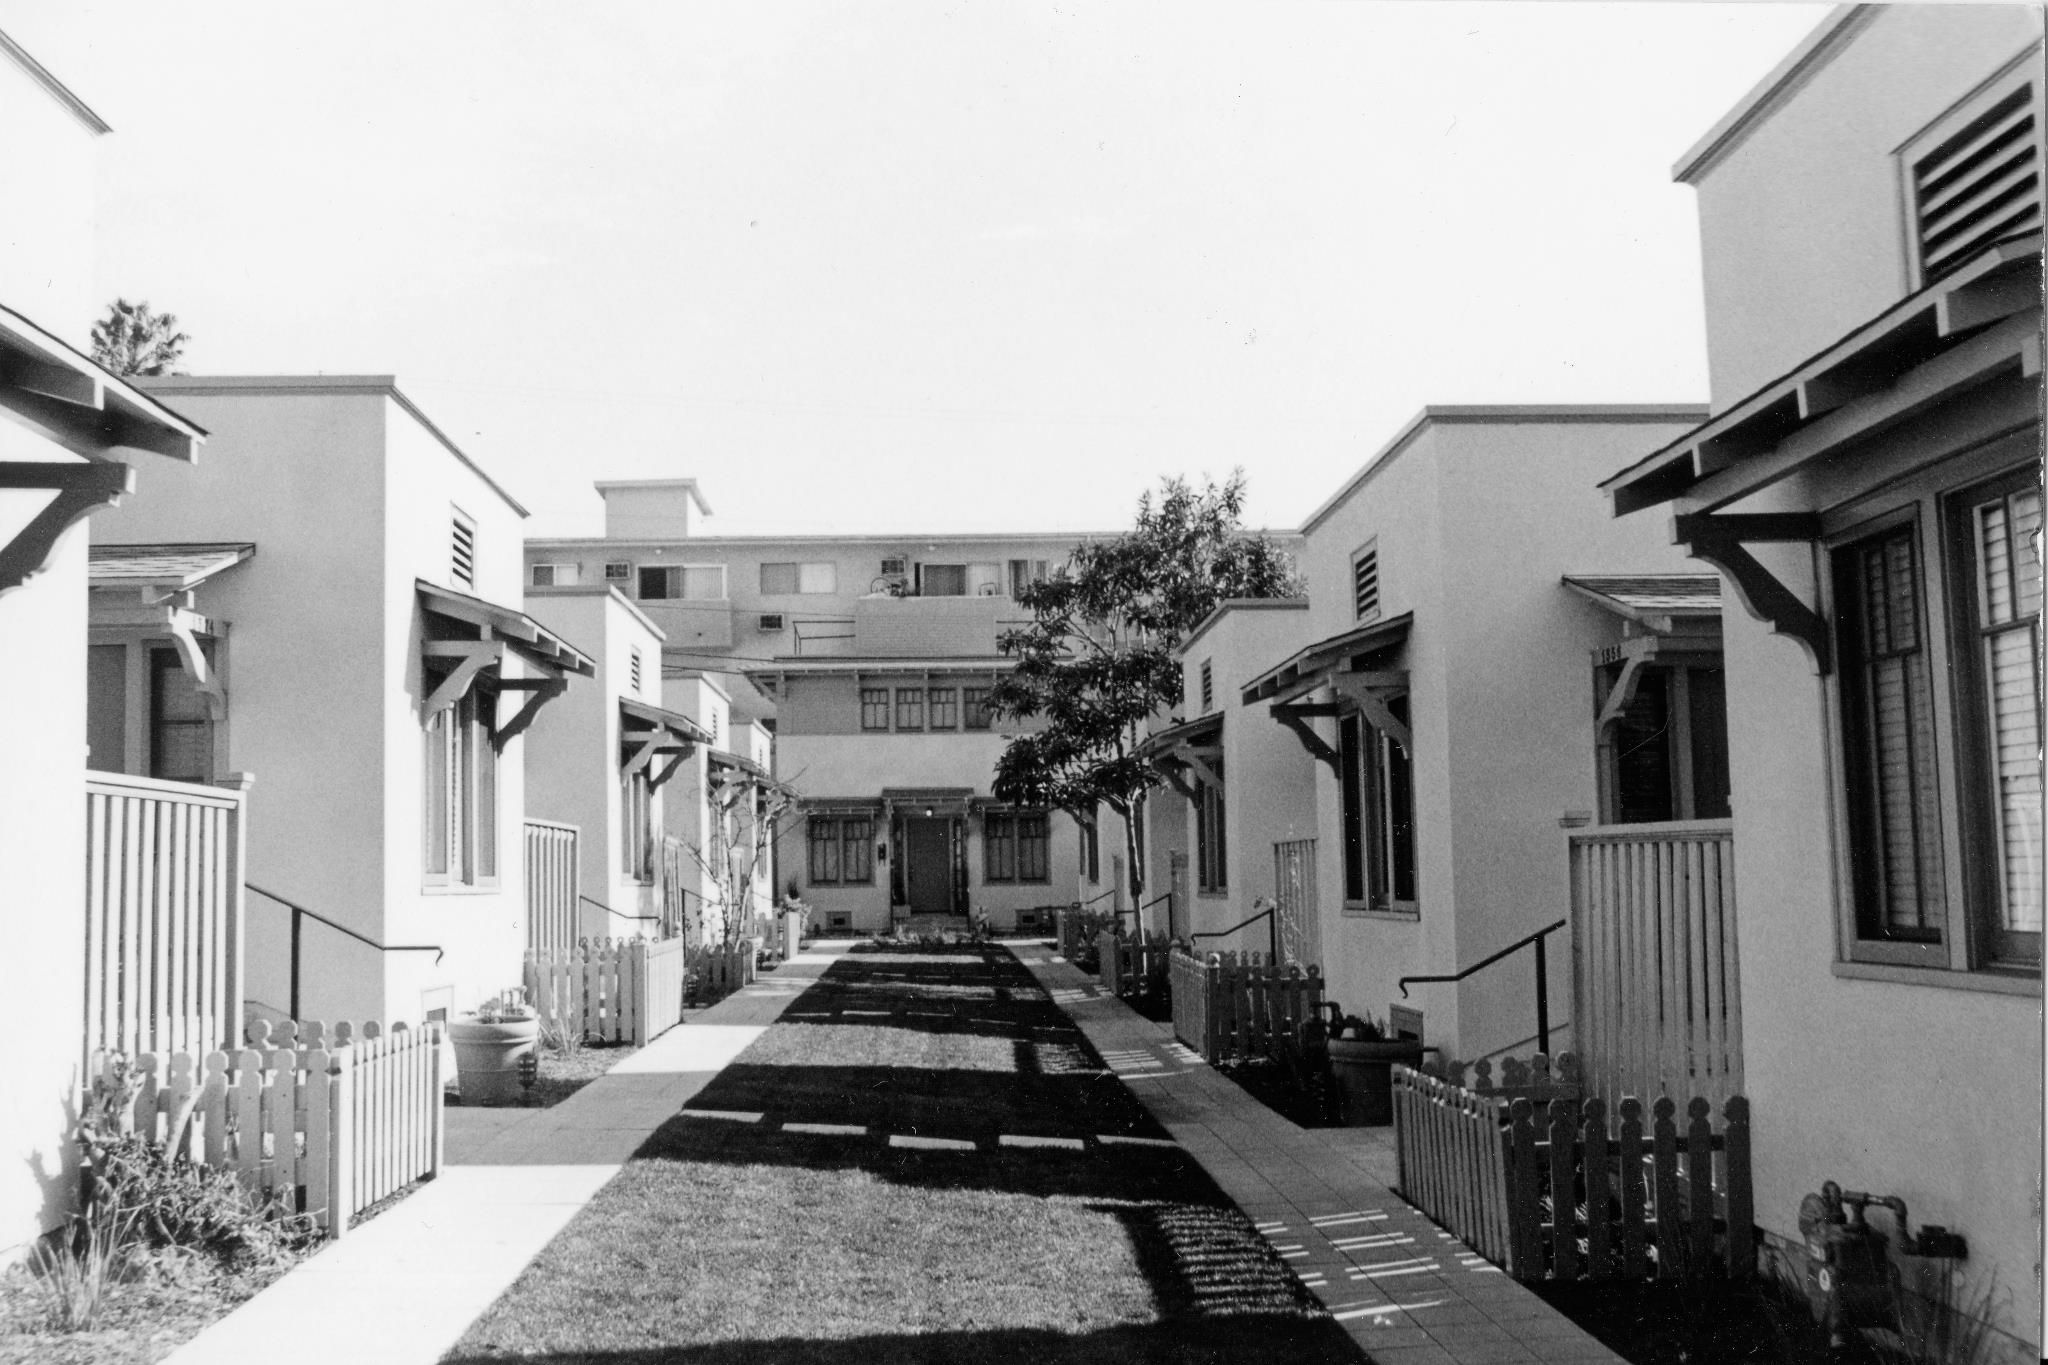 Bungalow Apts Los Angeles 30 S Or 40 I Love These Courts My Brother Lived In One For A Number Of Years Venice